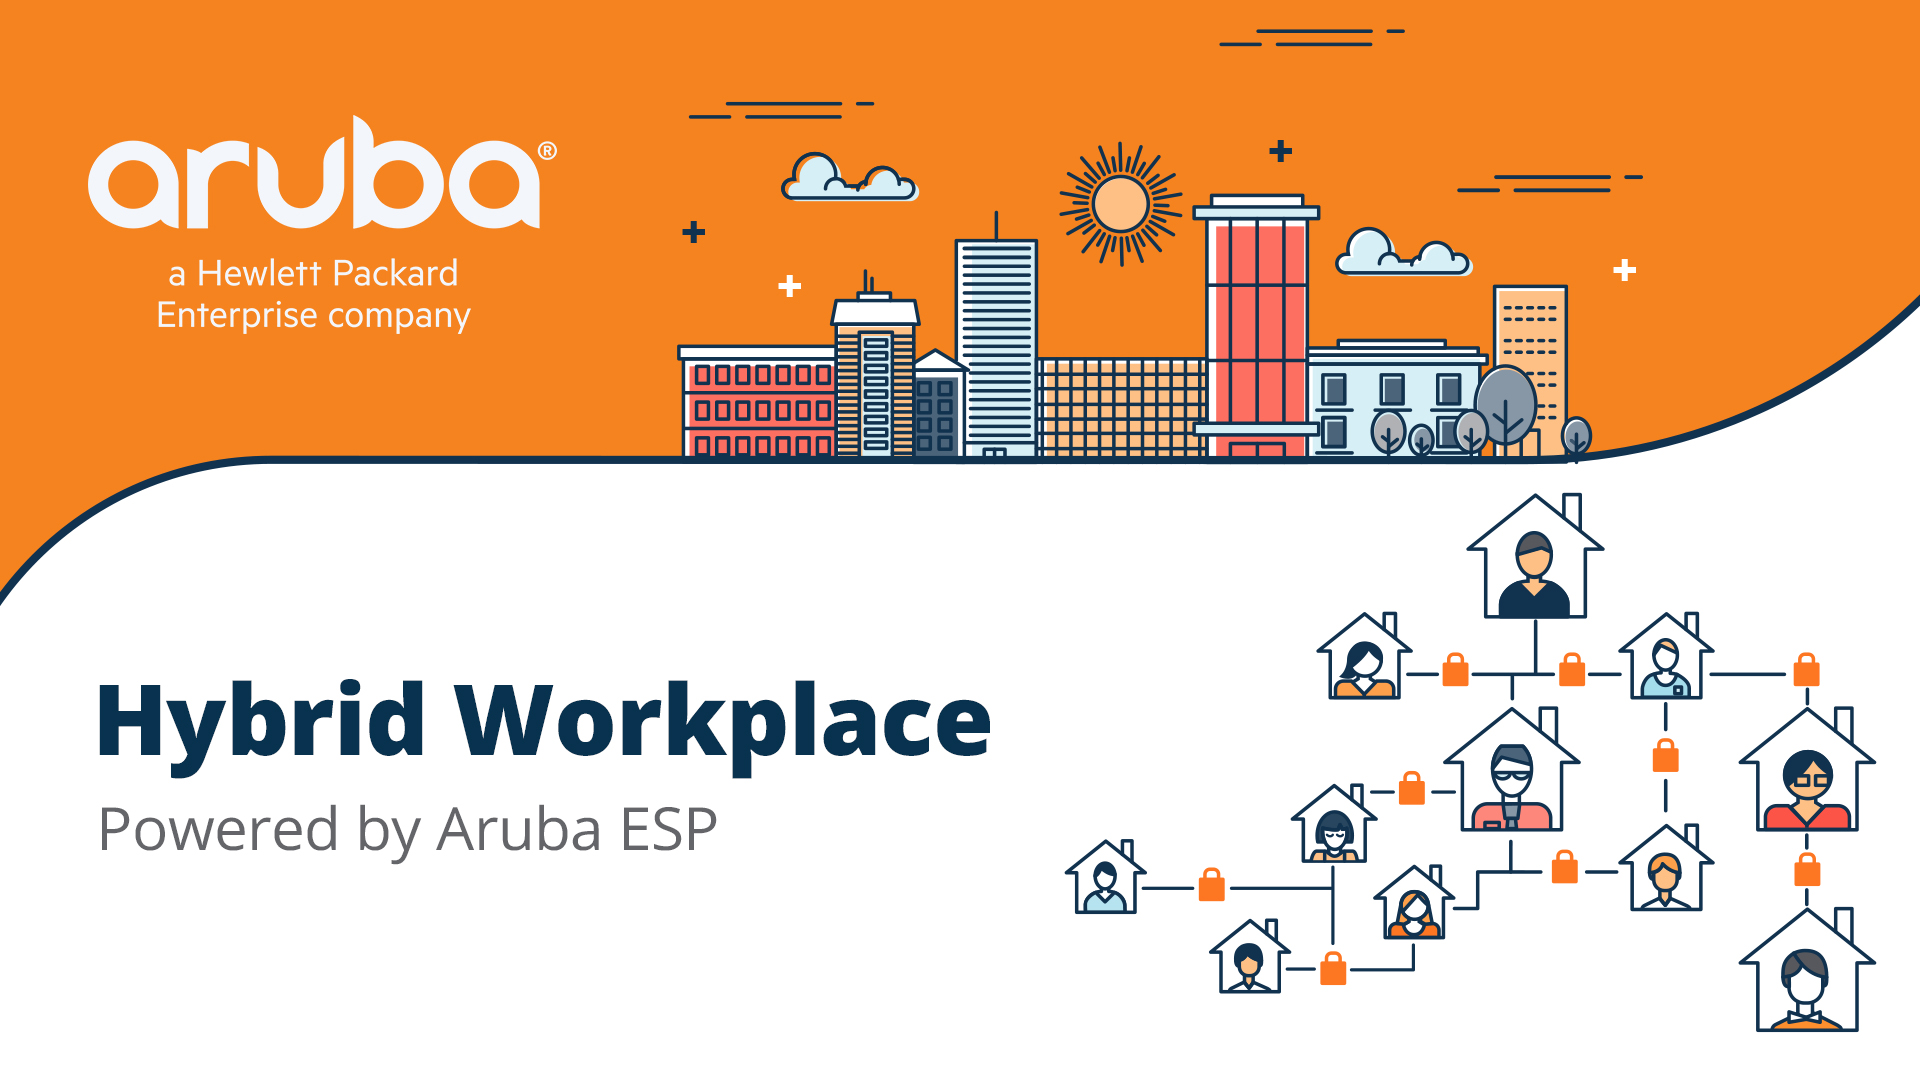 Aruba Hybrid Workplace